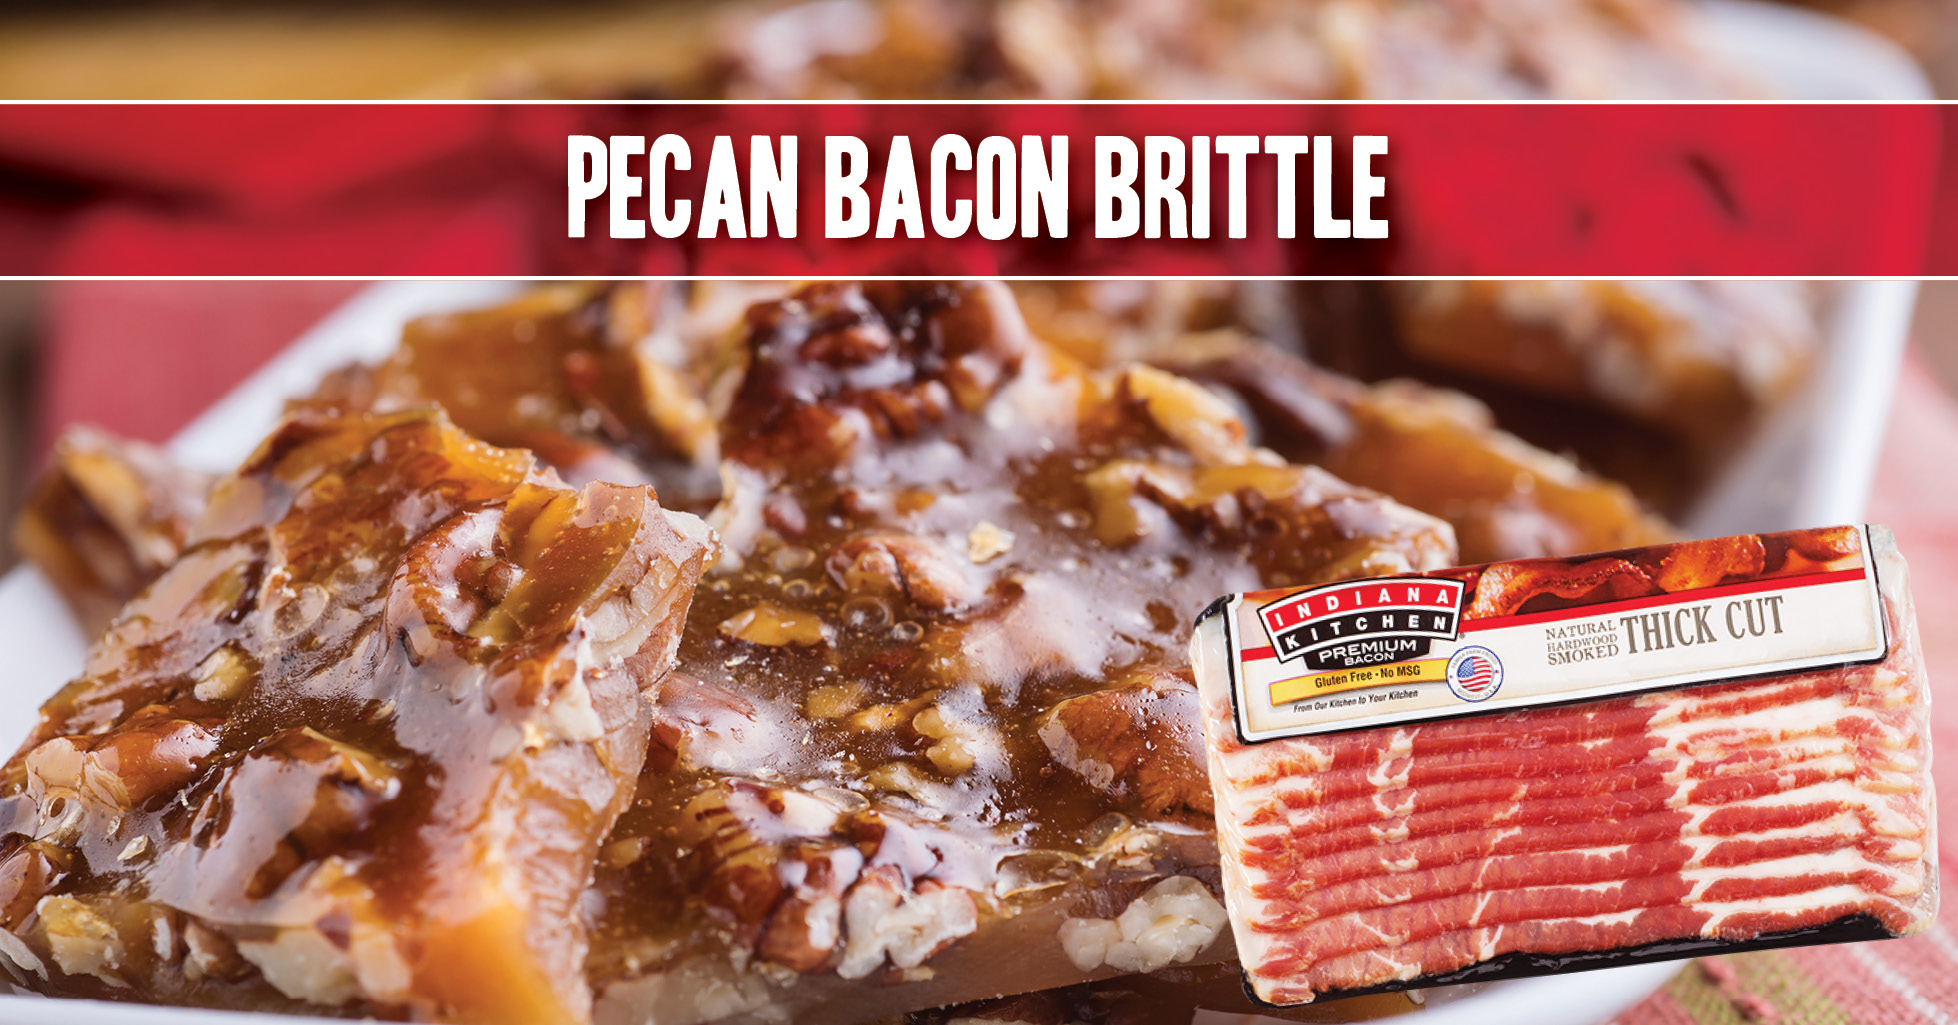 Pecan Bacon Brittle recipe featuring Indiana Kitchen bacon! Make it for your loved one as a gift for Valentine's Day!